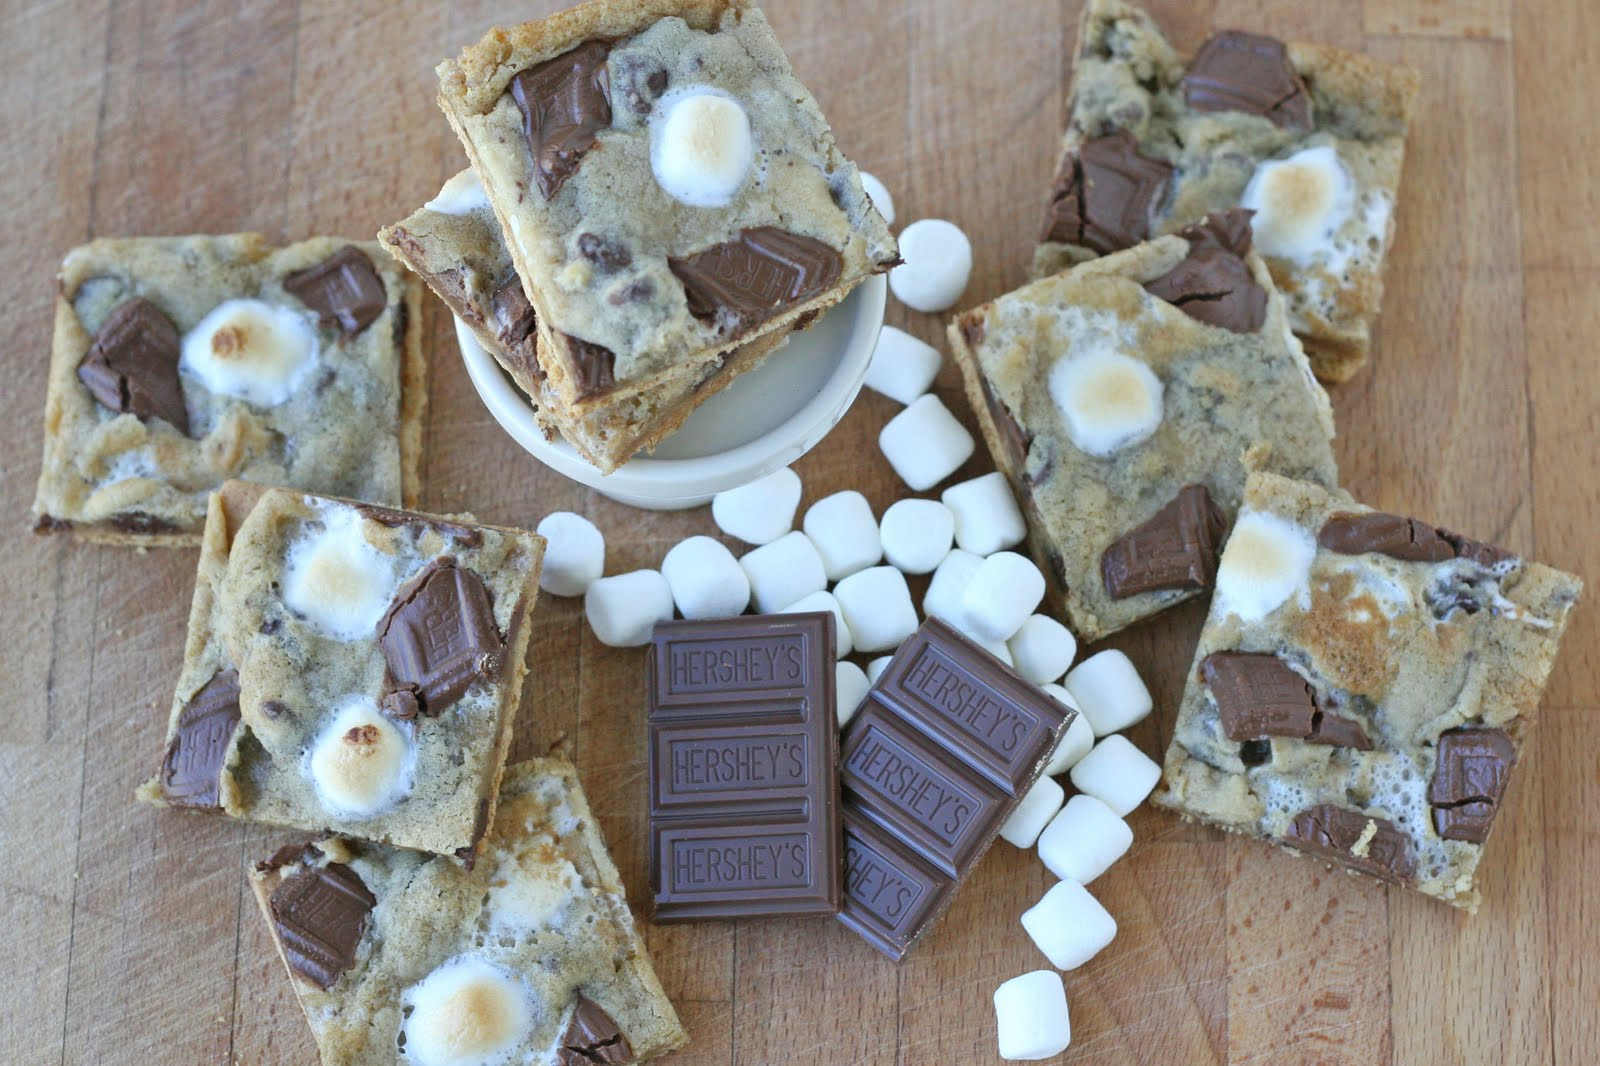 graham cracker smores surrounded by chocolate and marshmallows